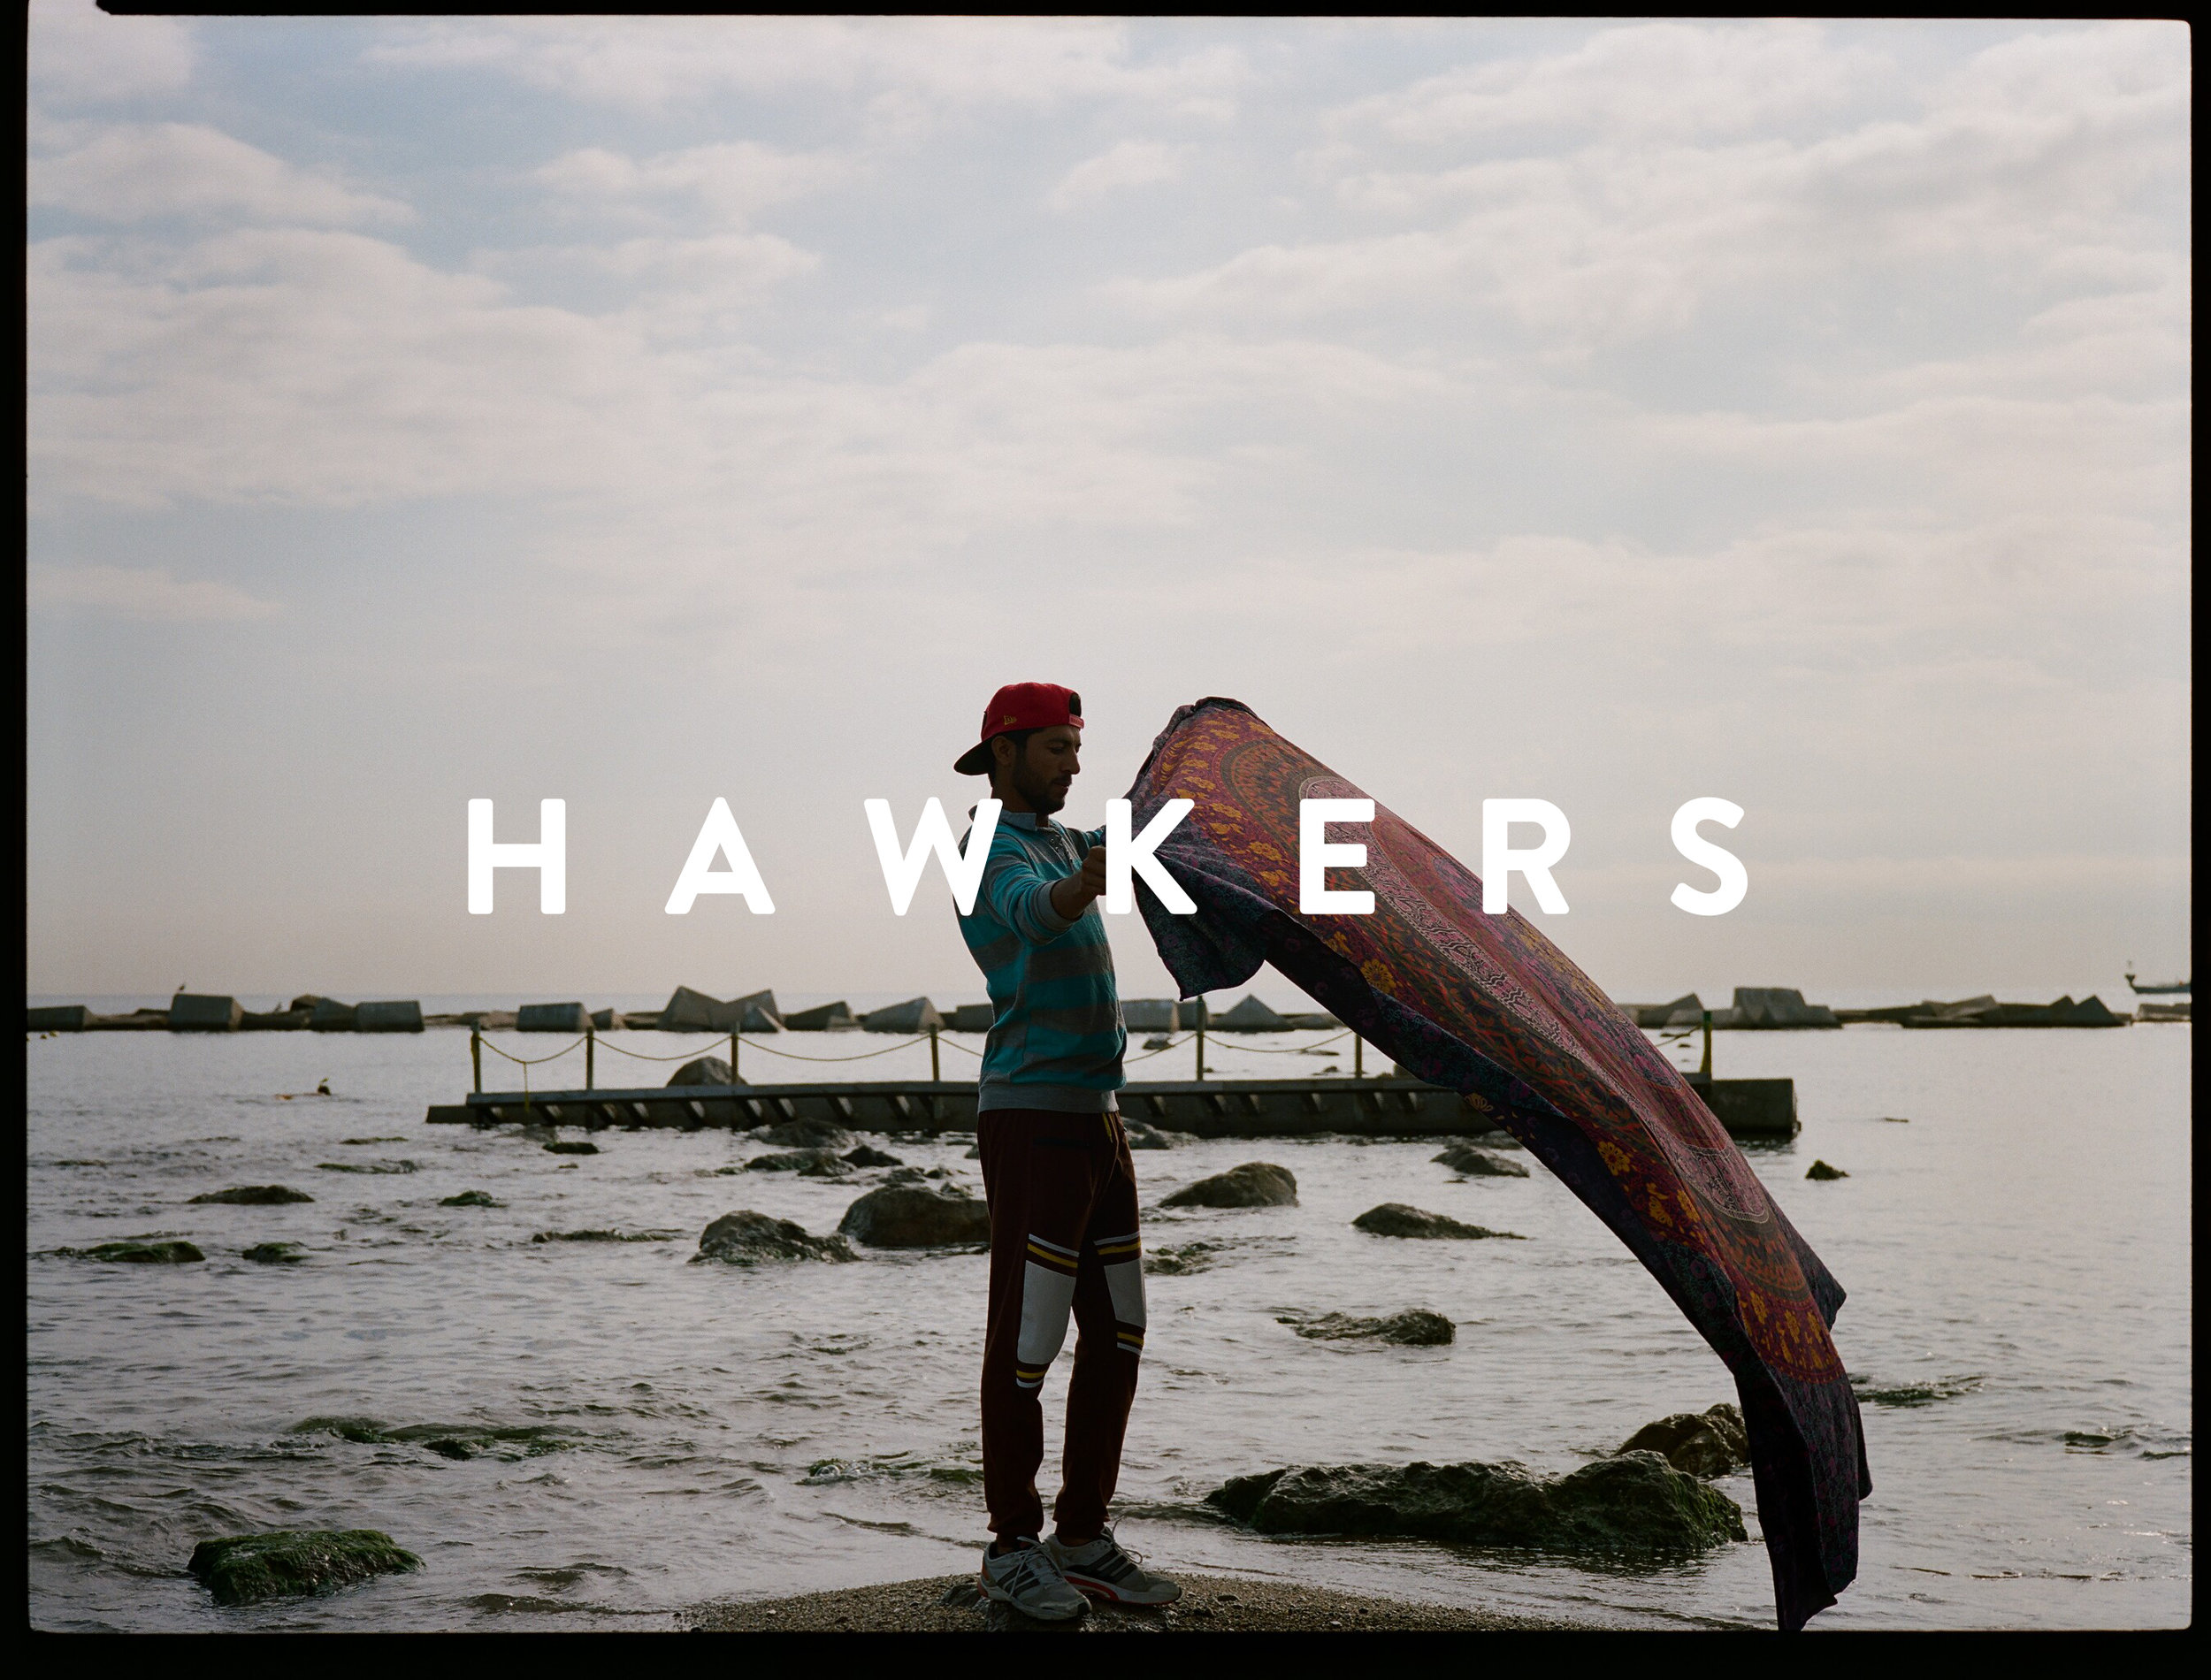 Hawkers Cover Image.jpg